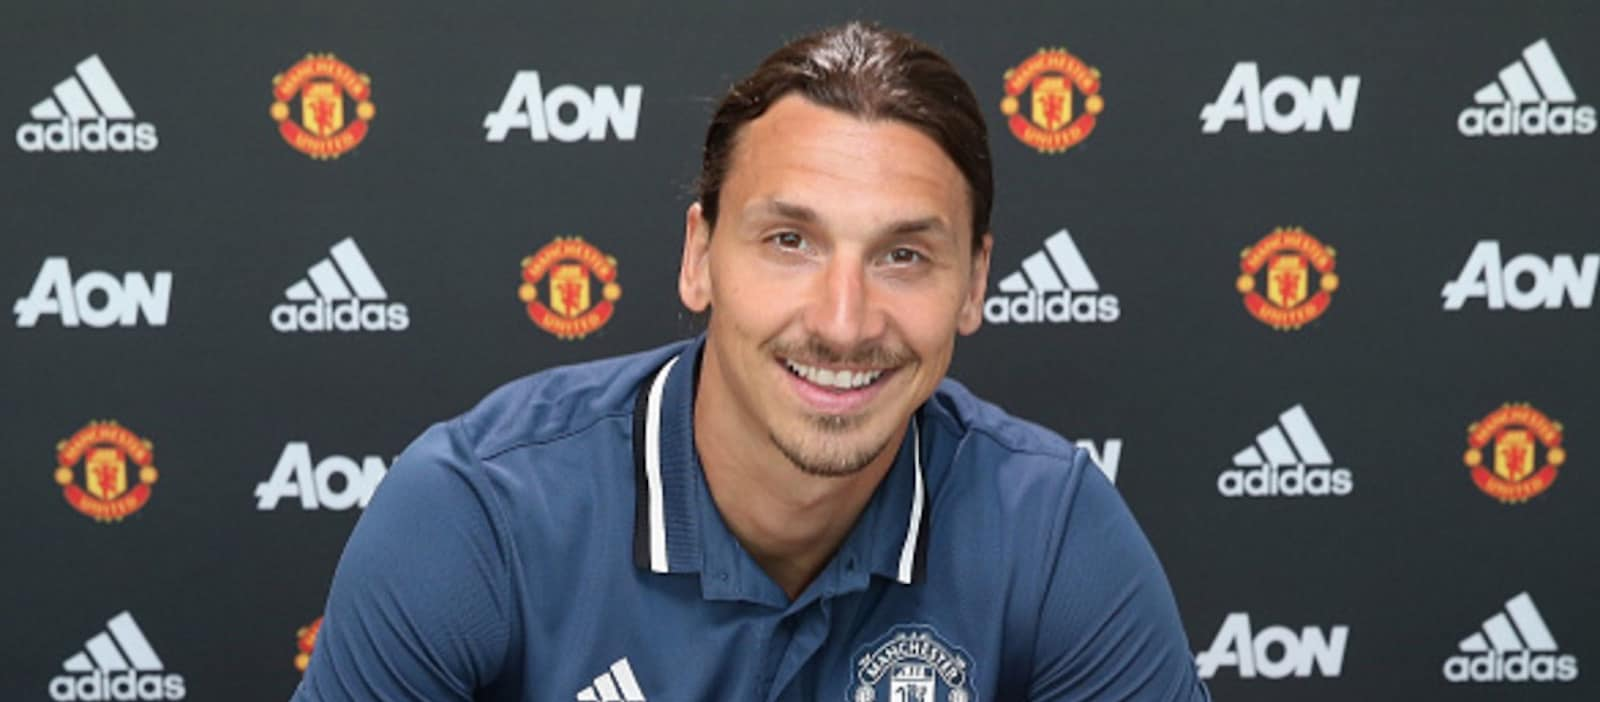 Zlatan Ibrahimovic has already broken records at Manchester United